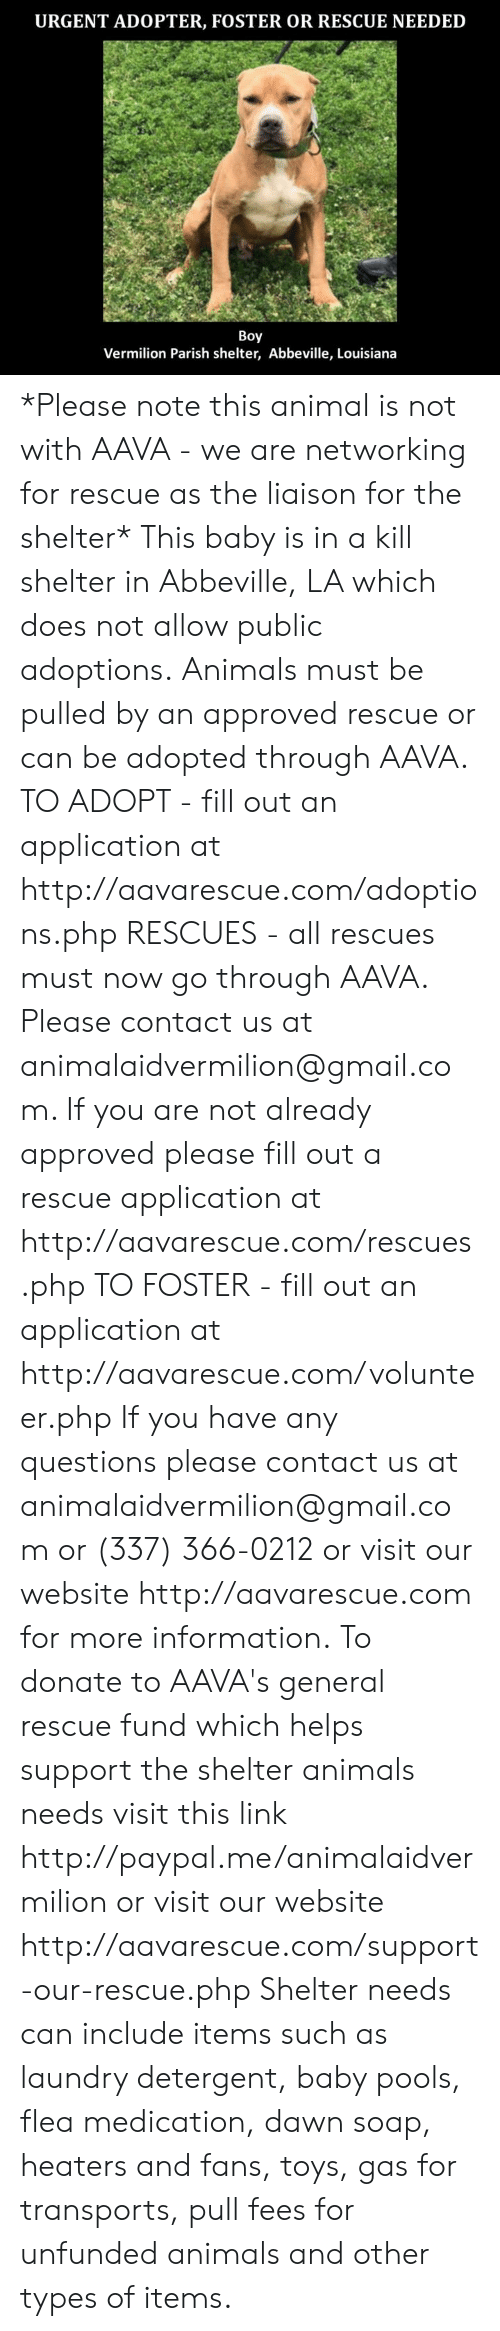 Animals, Laundry, and Memes: URGENT ADOPTER, FOSTER OR RESCUE NEEDED  Boy  Vermilion Parish shelter, Abbeville, Louisiana *Please note this animal is not with AAVA - we are networking for rescue as the liaison for the shelter* This baby is in a kill shelter in Abbeville, LA which does not allow public adoptions. Animals must be pulled by an approved rescue or can be adopted through AAVA.  TO ADOPT - fill out an application at http://aavarescue.com/adoptions.php  RESCUES - all rescues must now go through AAVA. Please contact us at animalaidvermilion@gmail.com. If you are not already approved please fill out a rescue application at http://aavarescue.com/rescues.php  TO FOSTER - fill out an application at http://aavarescue.com/volunteer.php  If you have any questions please contact us at animalaidvermilion@gmail.com or (337) 366-0212 or visit our website http://aavarescue.com for more information.  To donate to AAVA's general rescue fund which helps support the shelter animals needs visit this link http://paypal.me/animalaidvermilion or visit our website http://aavarescue.com/support-our-rescue.php Shelter needs can include items such as laundry detergent, baby pools, flea medication, dawn soap, heaters and fans, toys, gas for transports, pull fees for unfunded animals and other types of items.